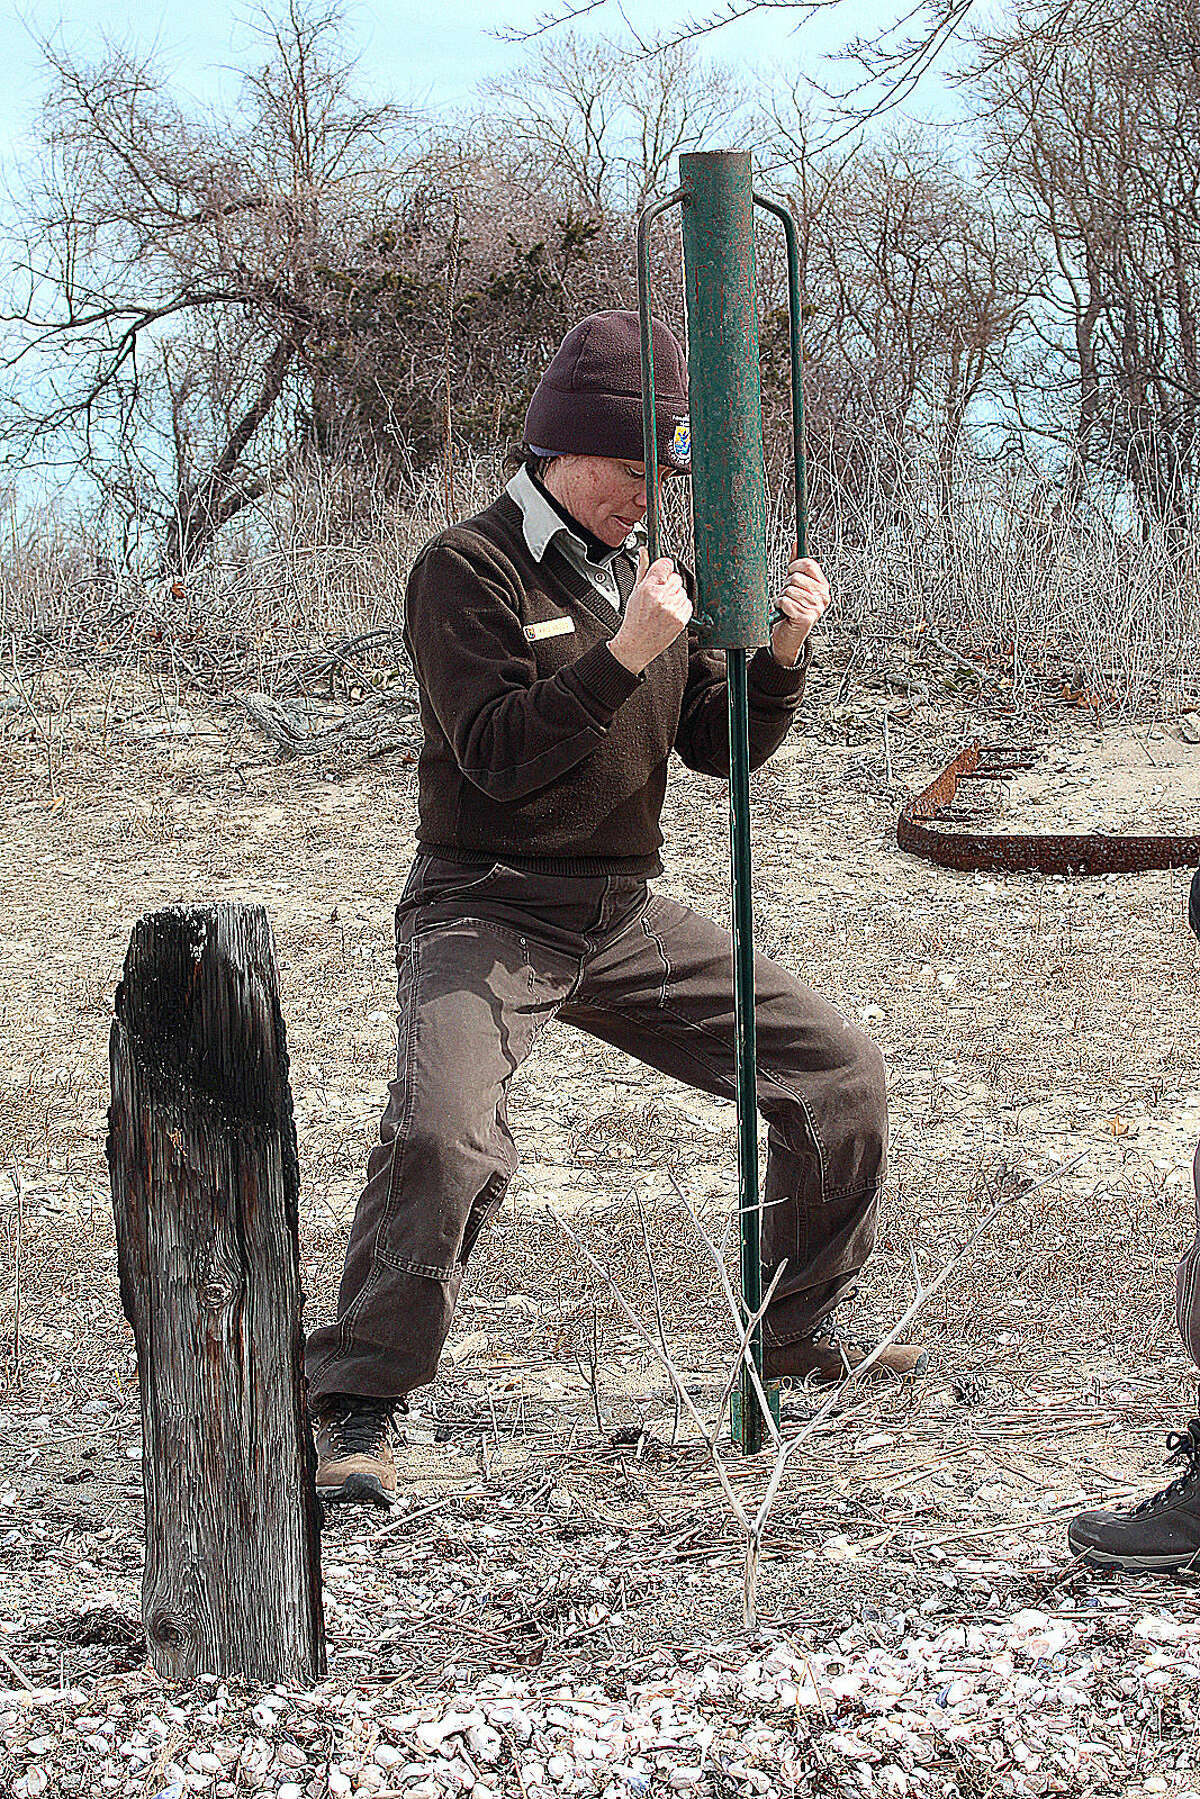 Hour photo/Chris Bosak U.S. Fish and Wildlife biologist Kris Vagos digs a hole for a polel on Chimon Island on Wednesday. The U.S. Fish & Wildlife officials were on the island to mark off areas to protect a bald eagle nest.